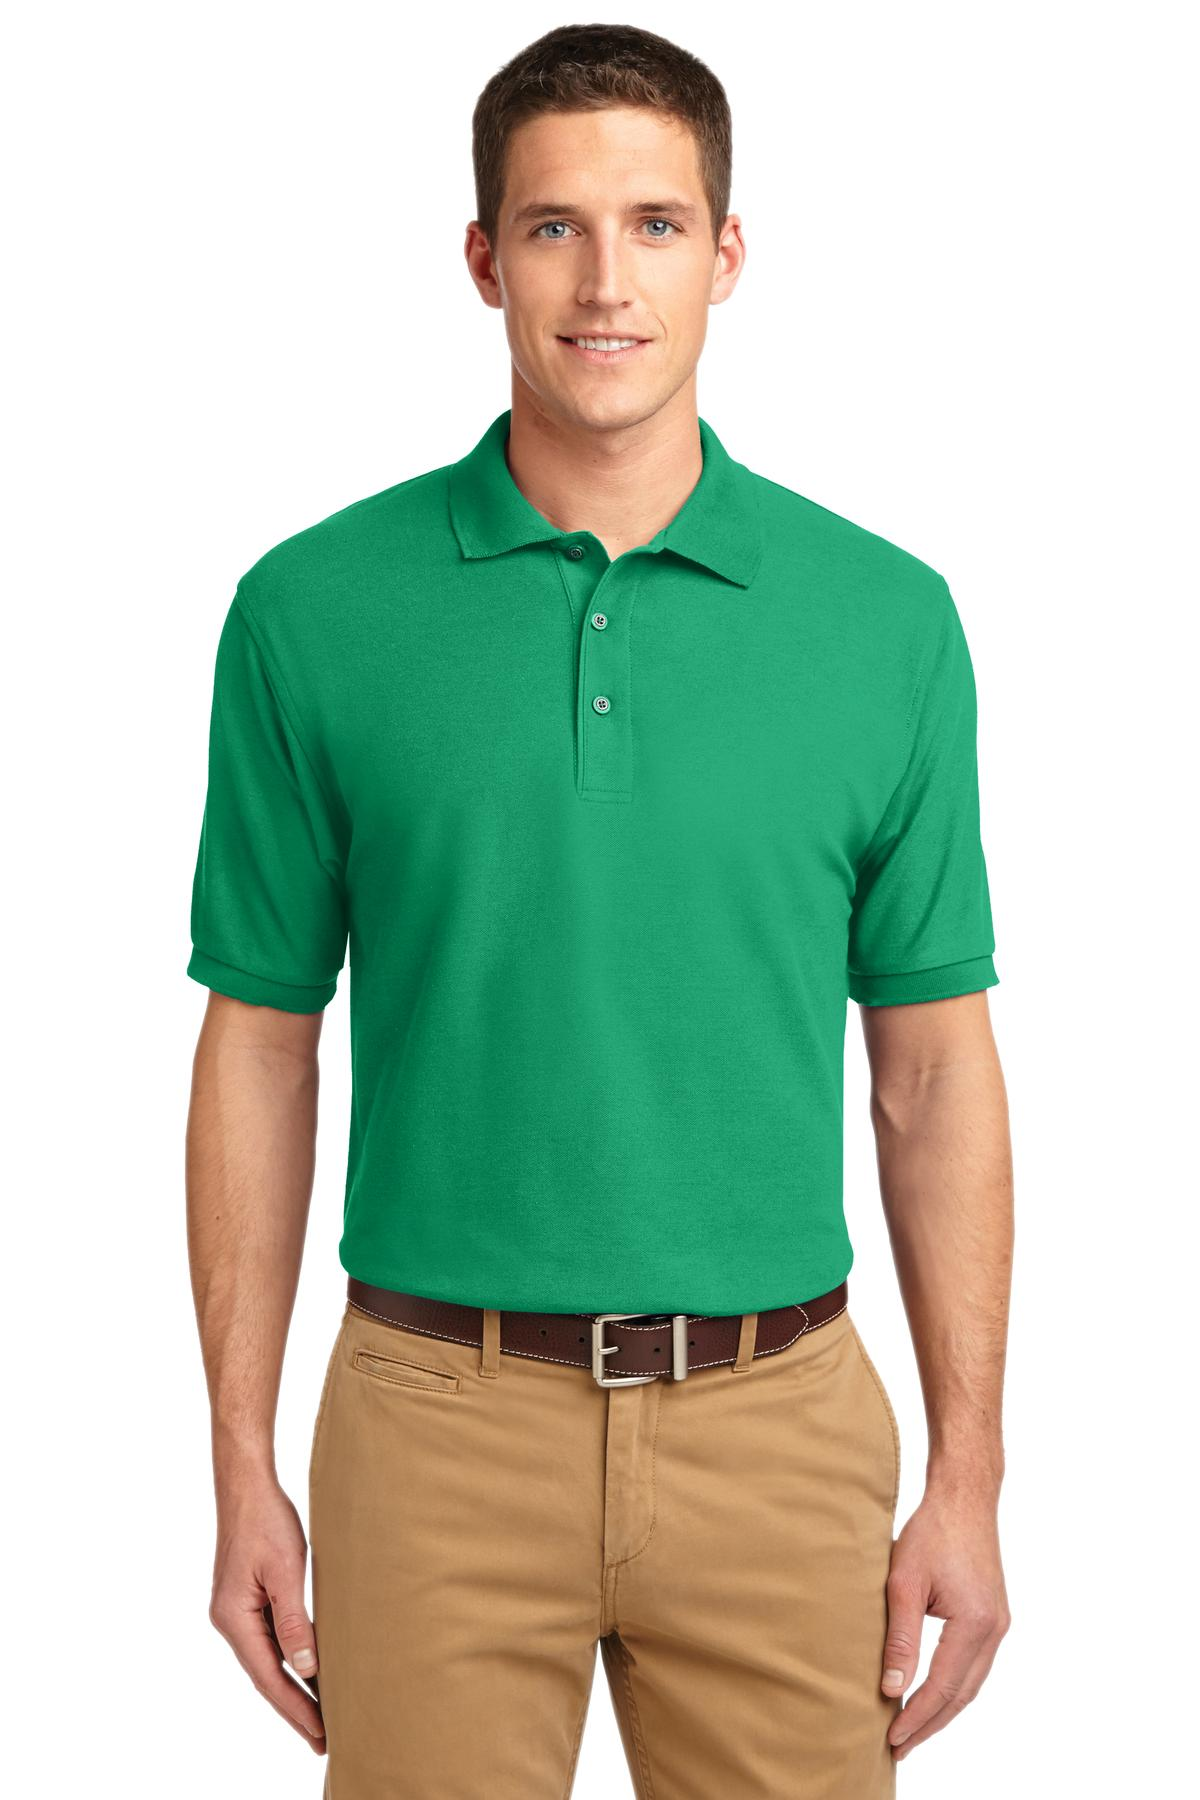 Court Green Port Authority Extended Size Silk Touch Polo.